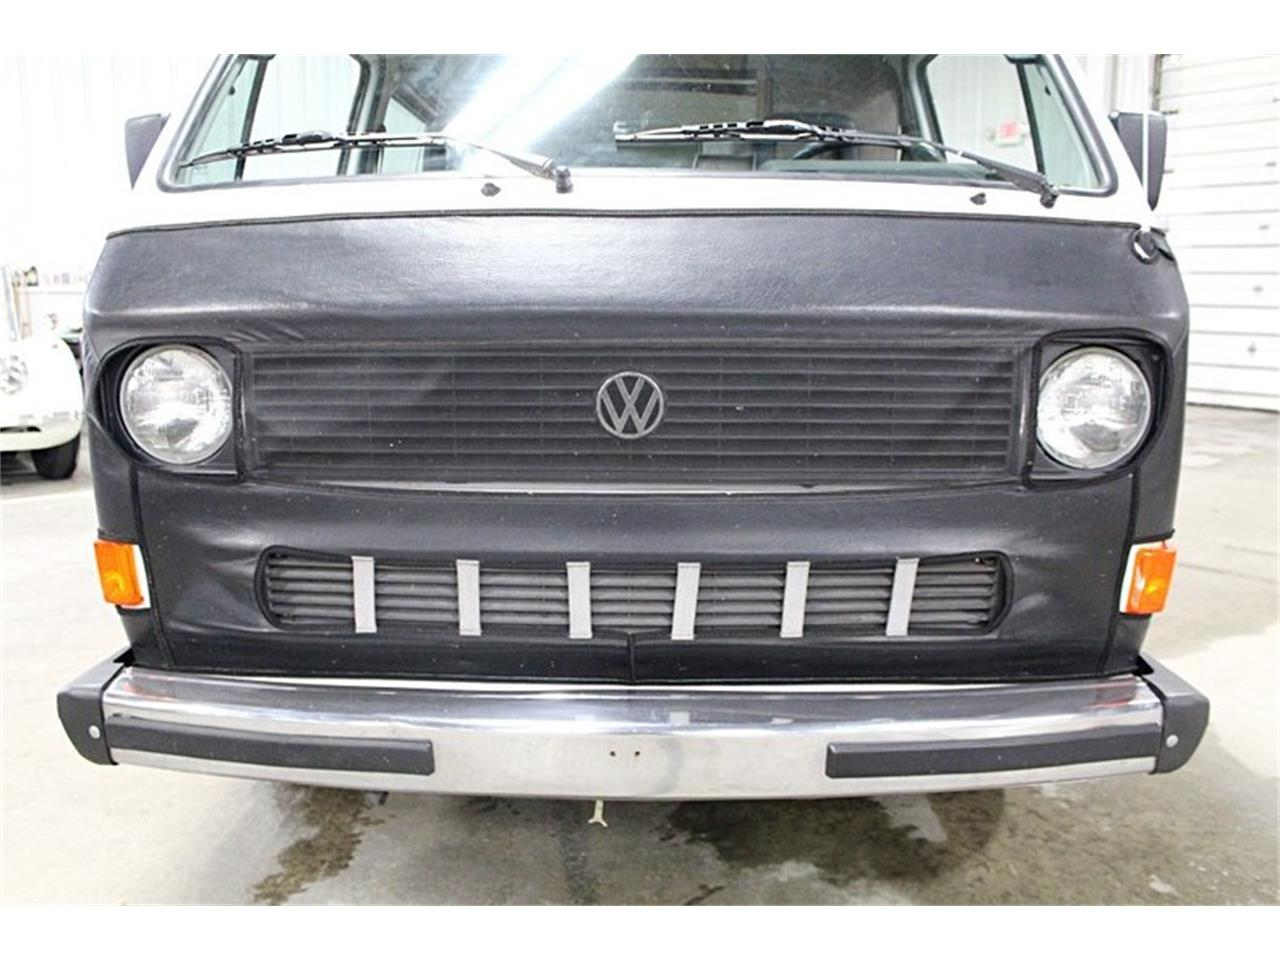 Large Picture of 1983 Volkswagen Van located in Michigan Offered by GR Auto Gallery - PPV8